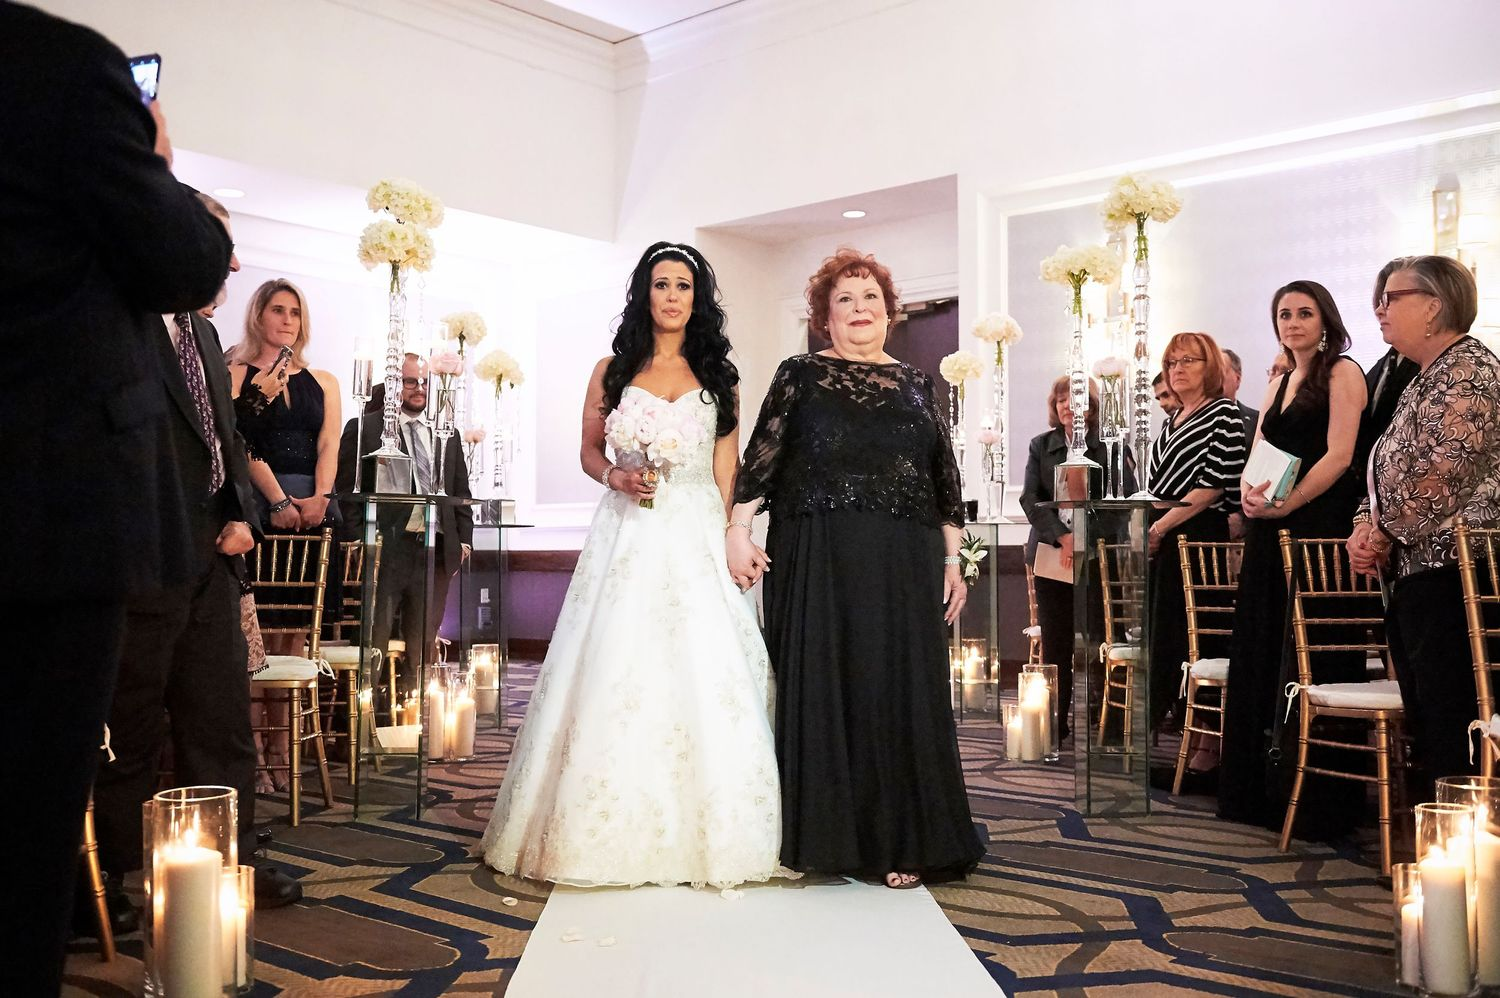 bride escorted by mom during ceremony